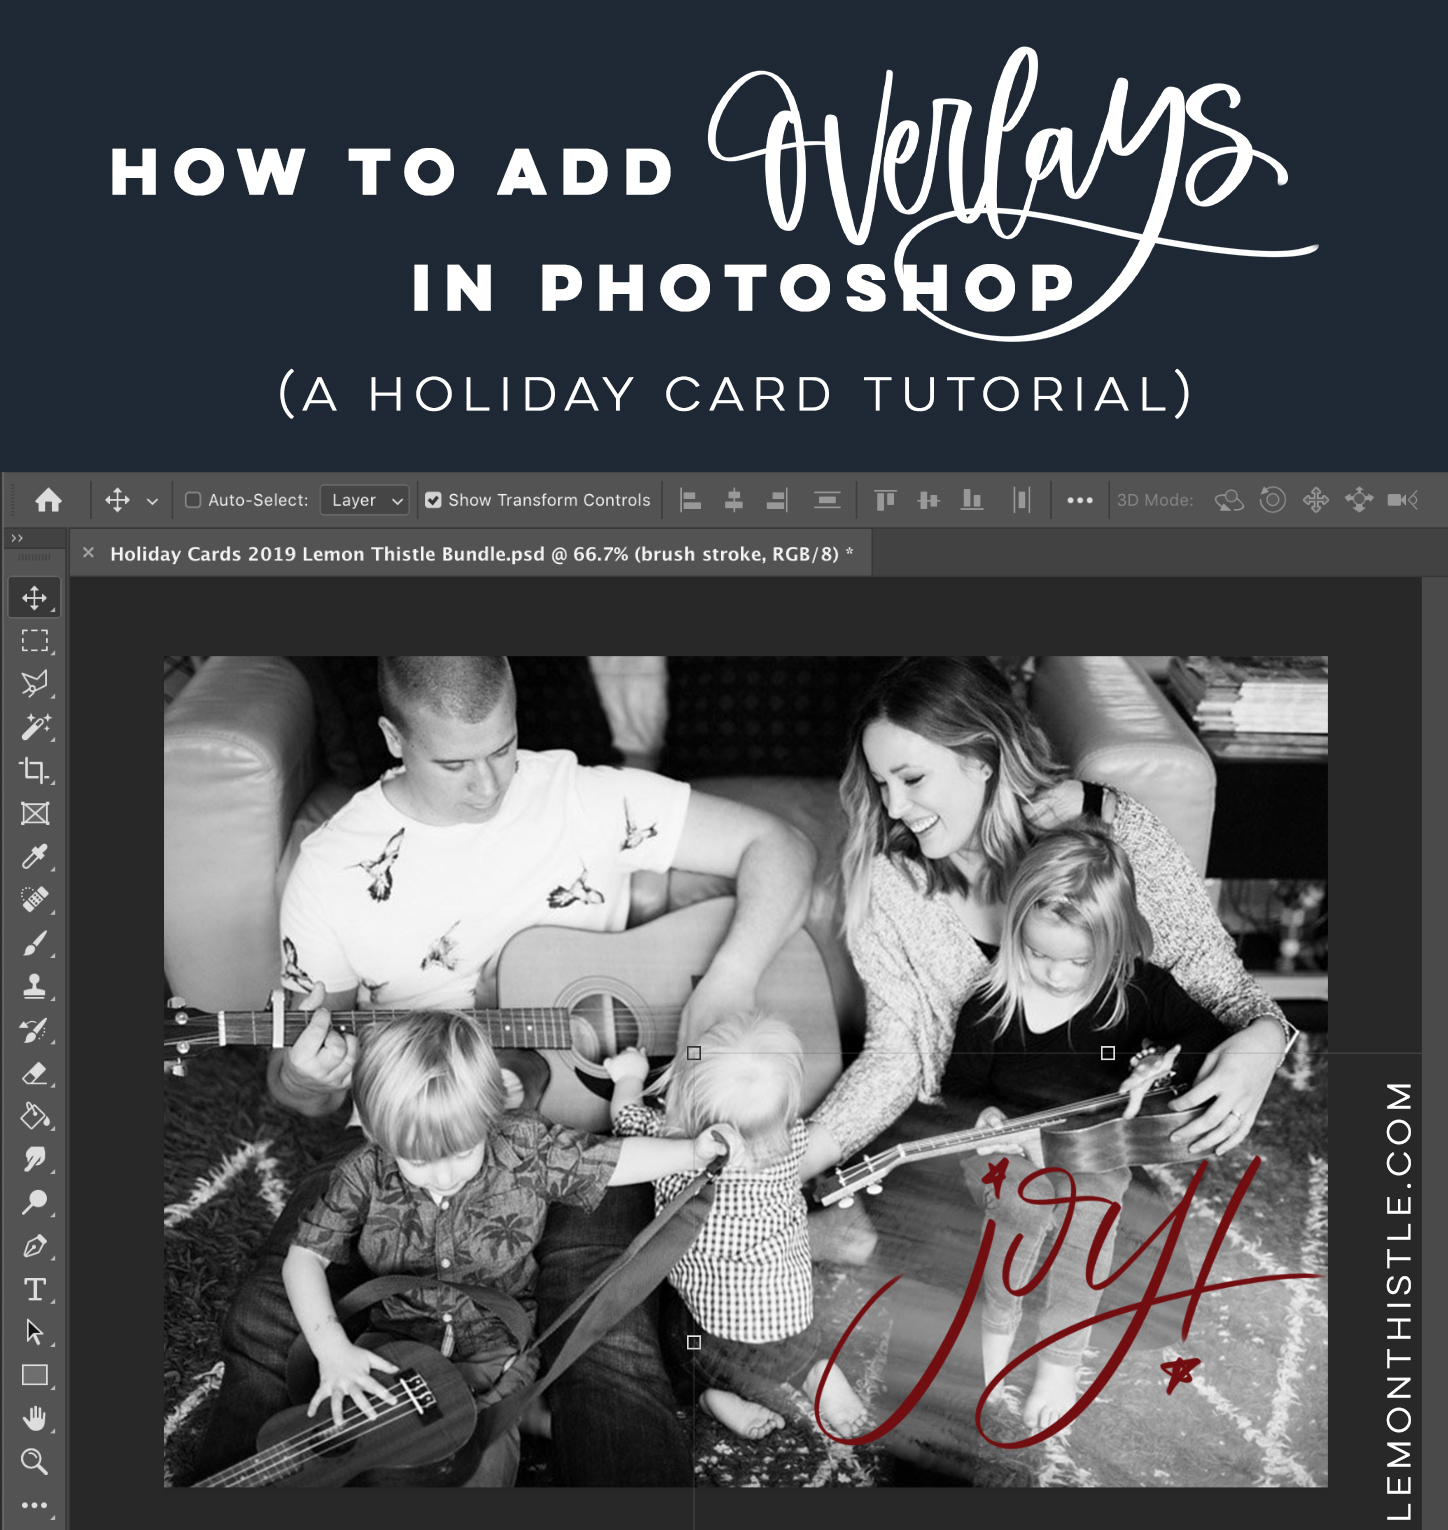 How to add overlays to photos in photoshop (beginner photoshop tutorial)